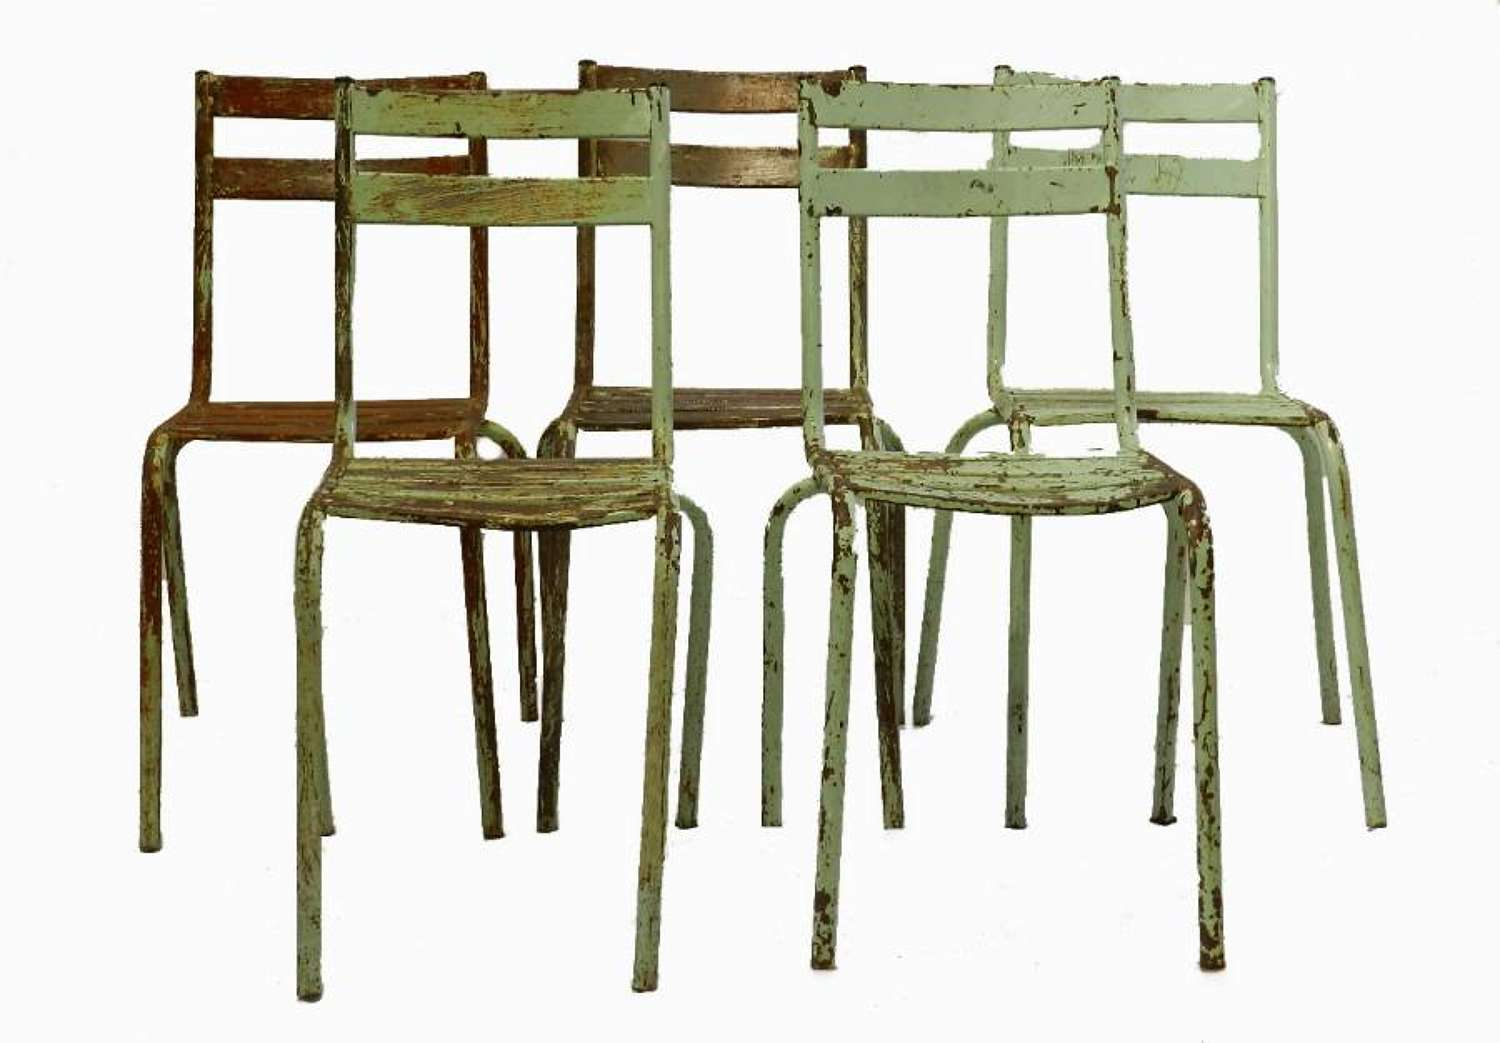 5 French Metal Stacking Chairs by Art Prog 1950s